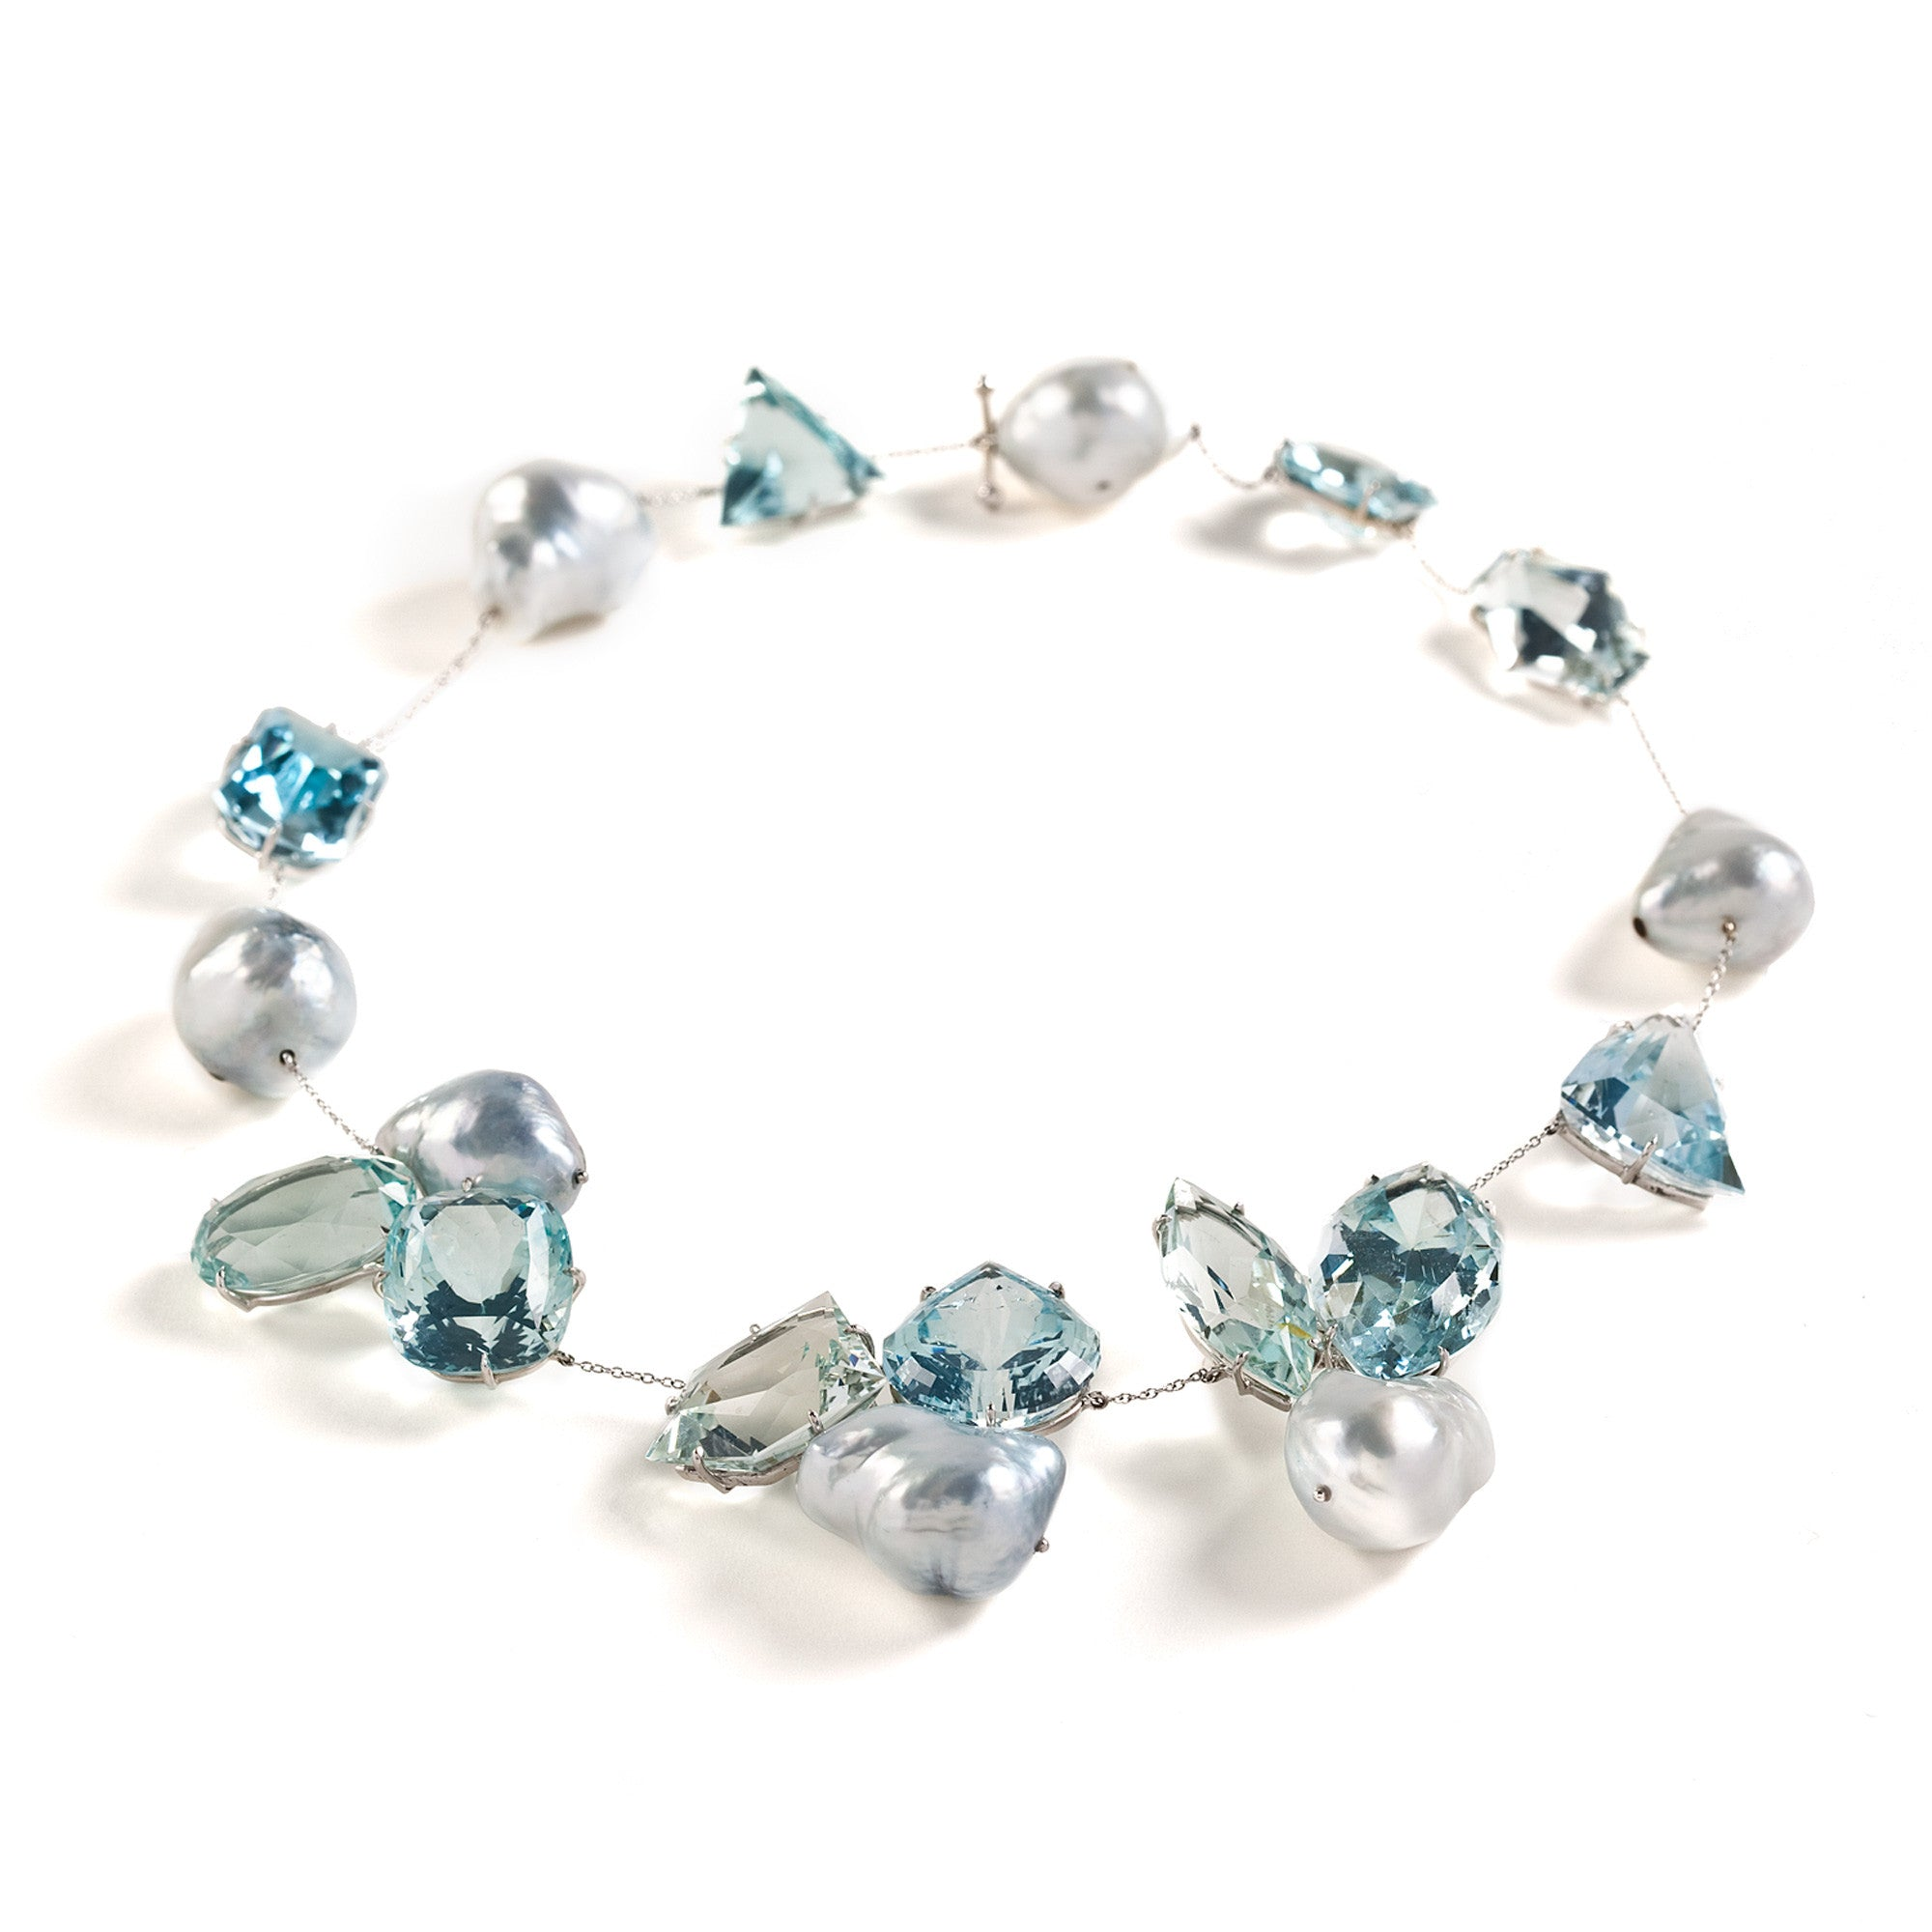 SNOW XVIII topaz necklace